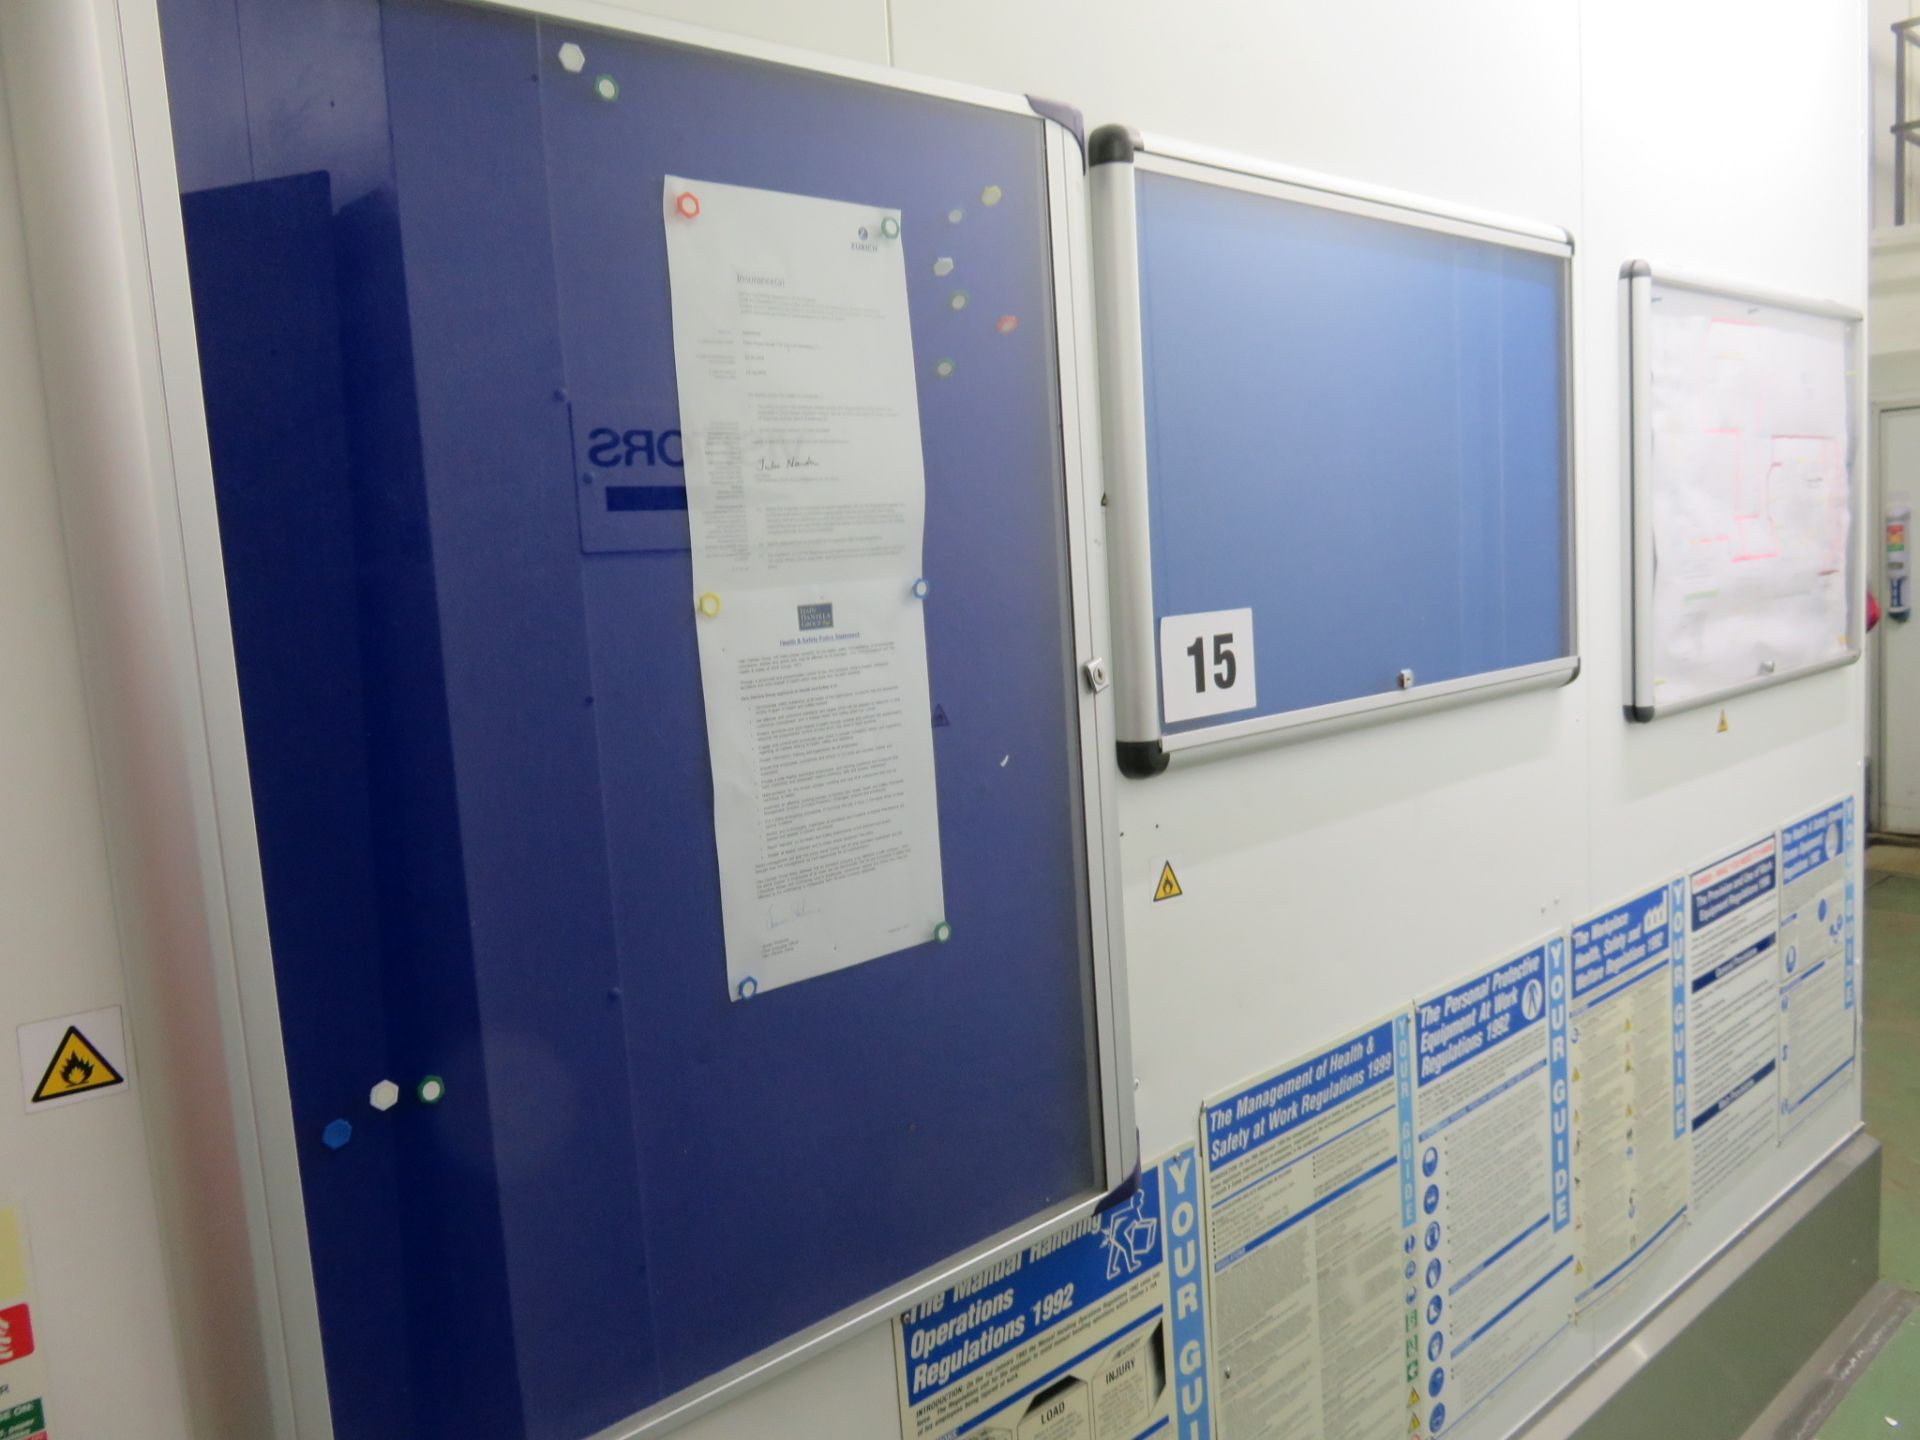 Lot 15 - 3 x Wall mounted Display Boards 800 x 1000mm high; 900 x 550mm high; 950 x 650 high. Lift out £15